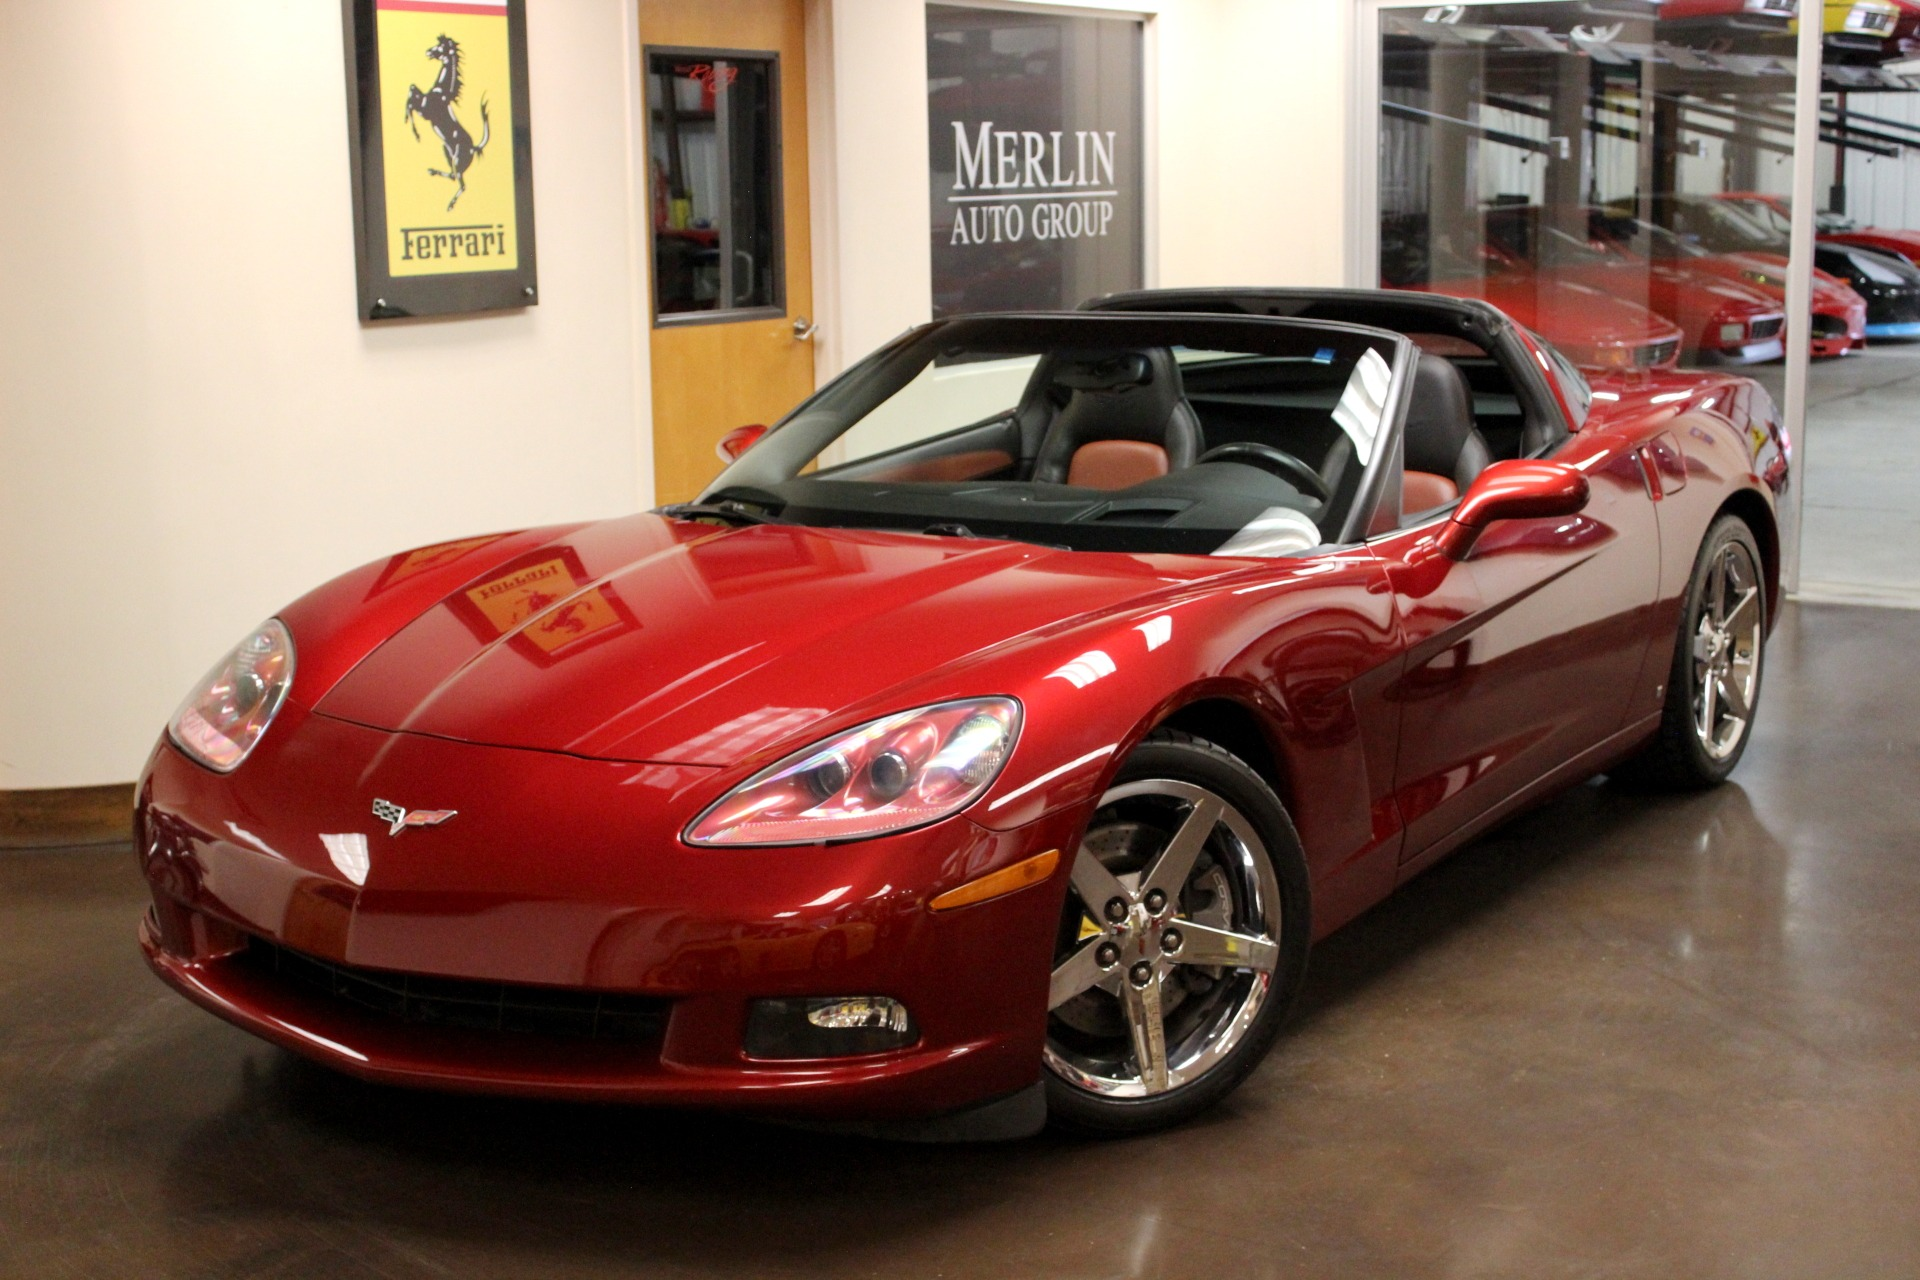 2008 Chevrolet Corvette Coupe LT4